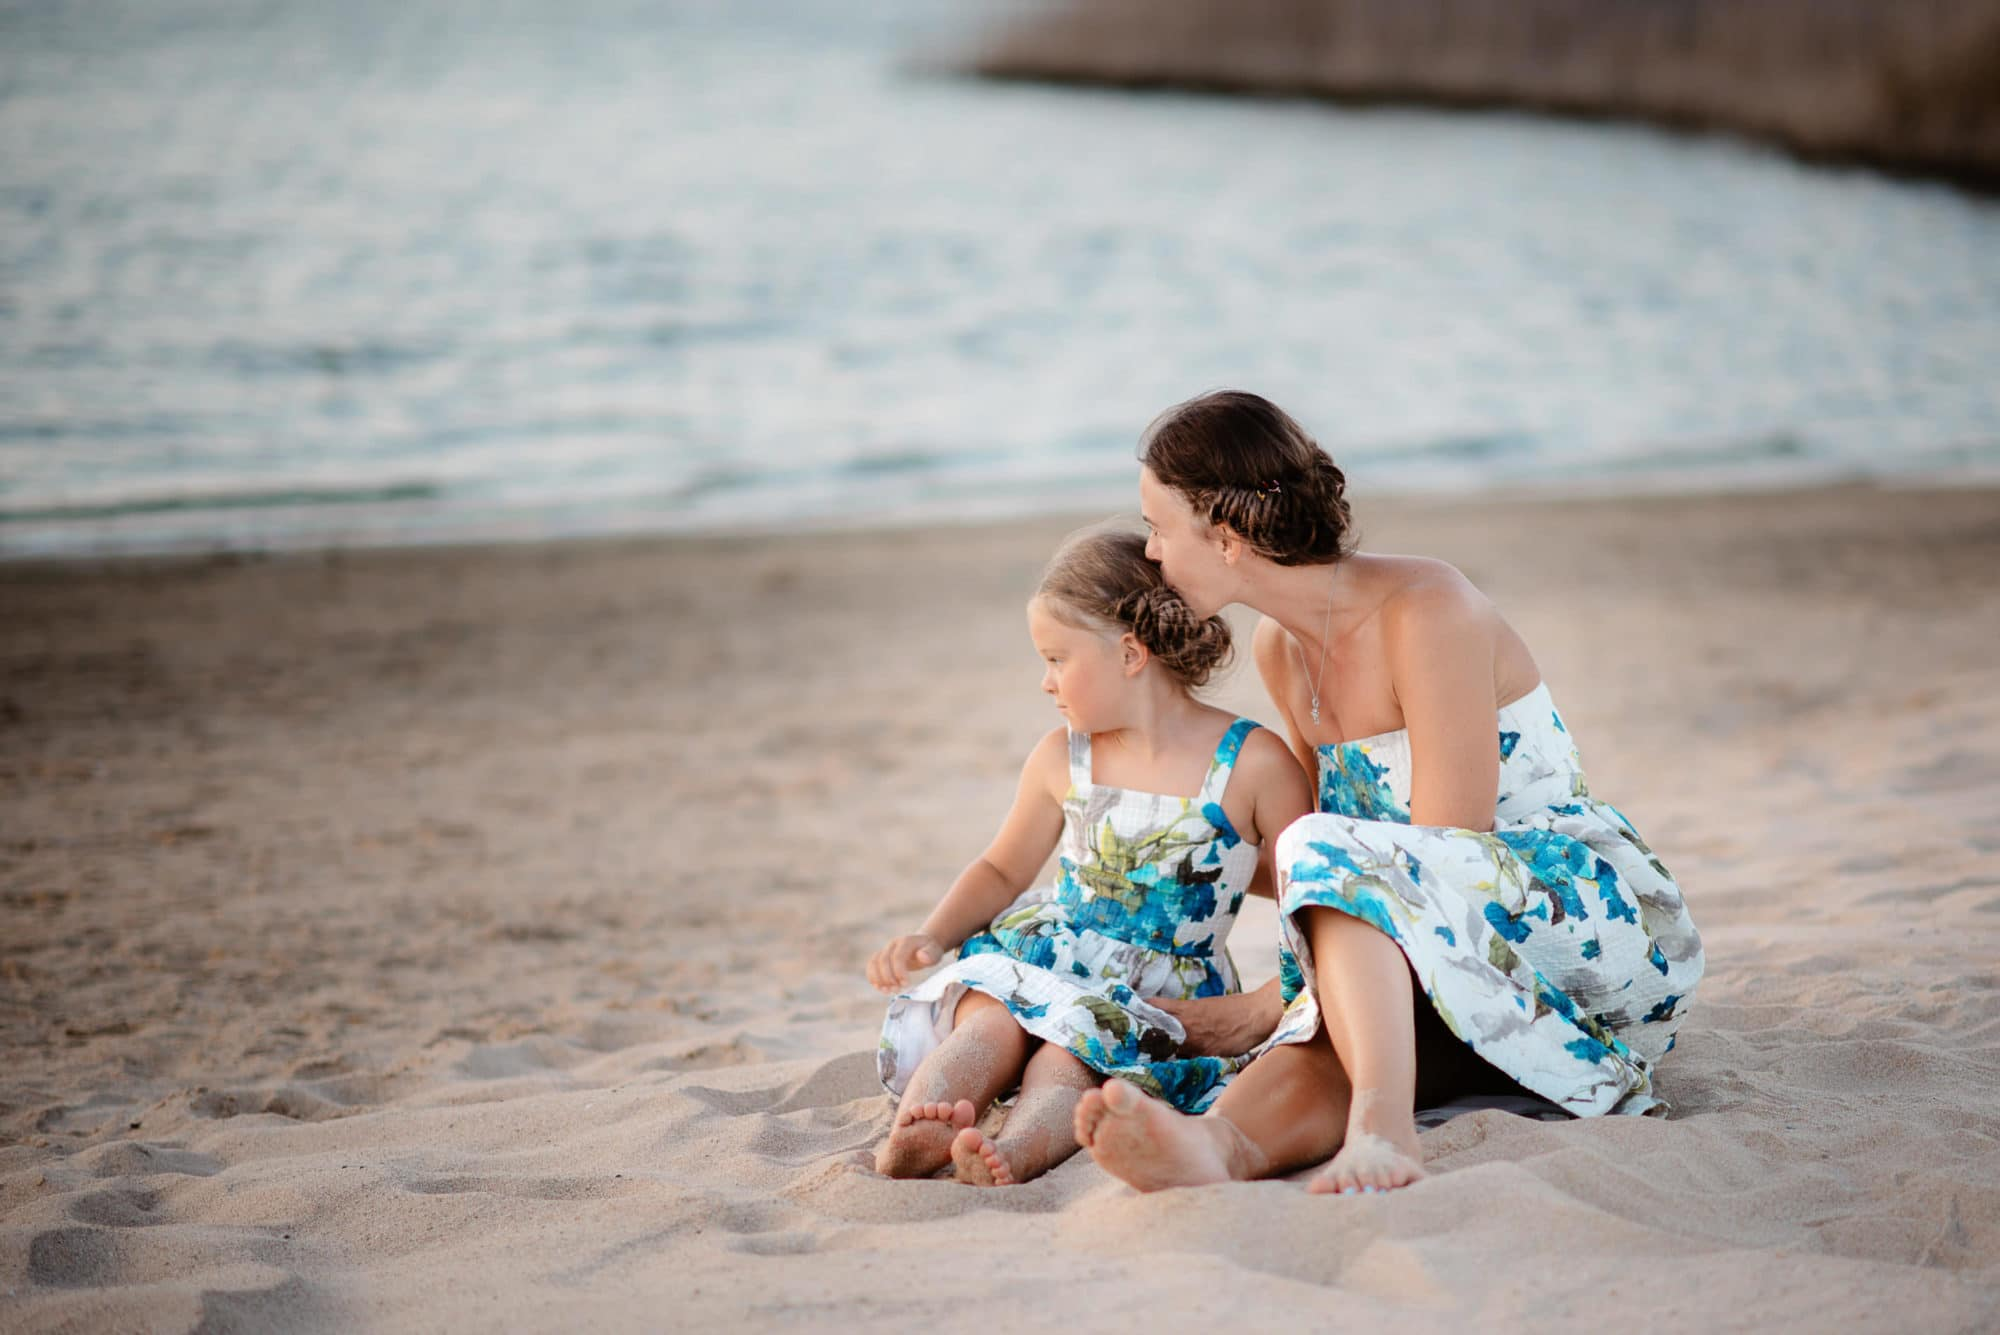 Holiday photos in sardinia